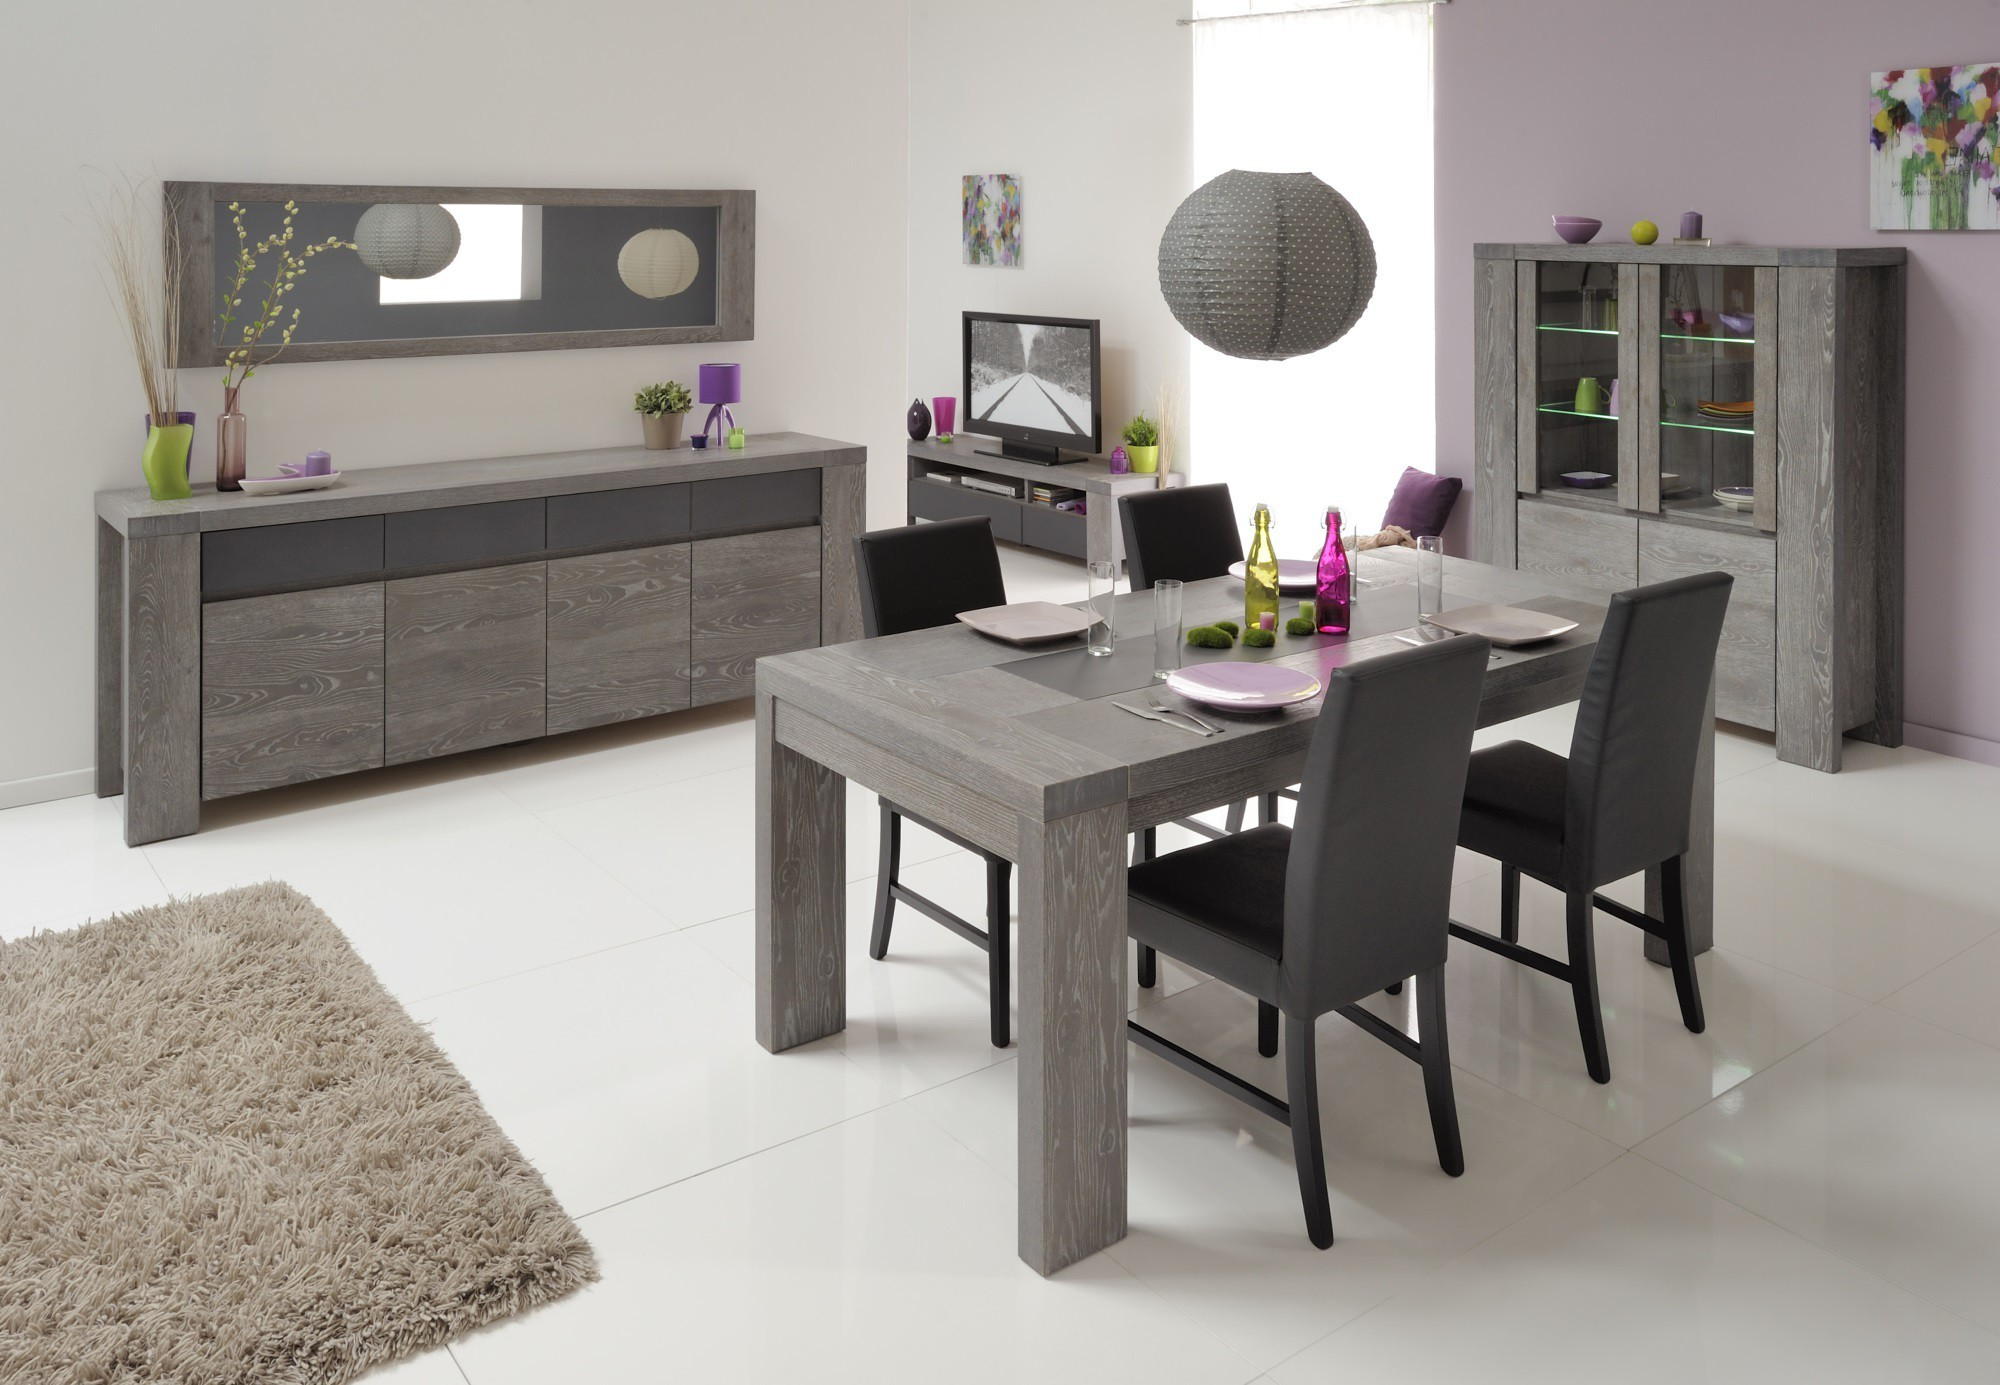 Table salle a manger design conforama cool ides de table for Table salle a manger conforama